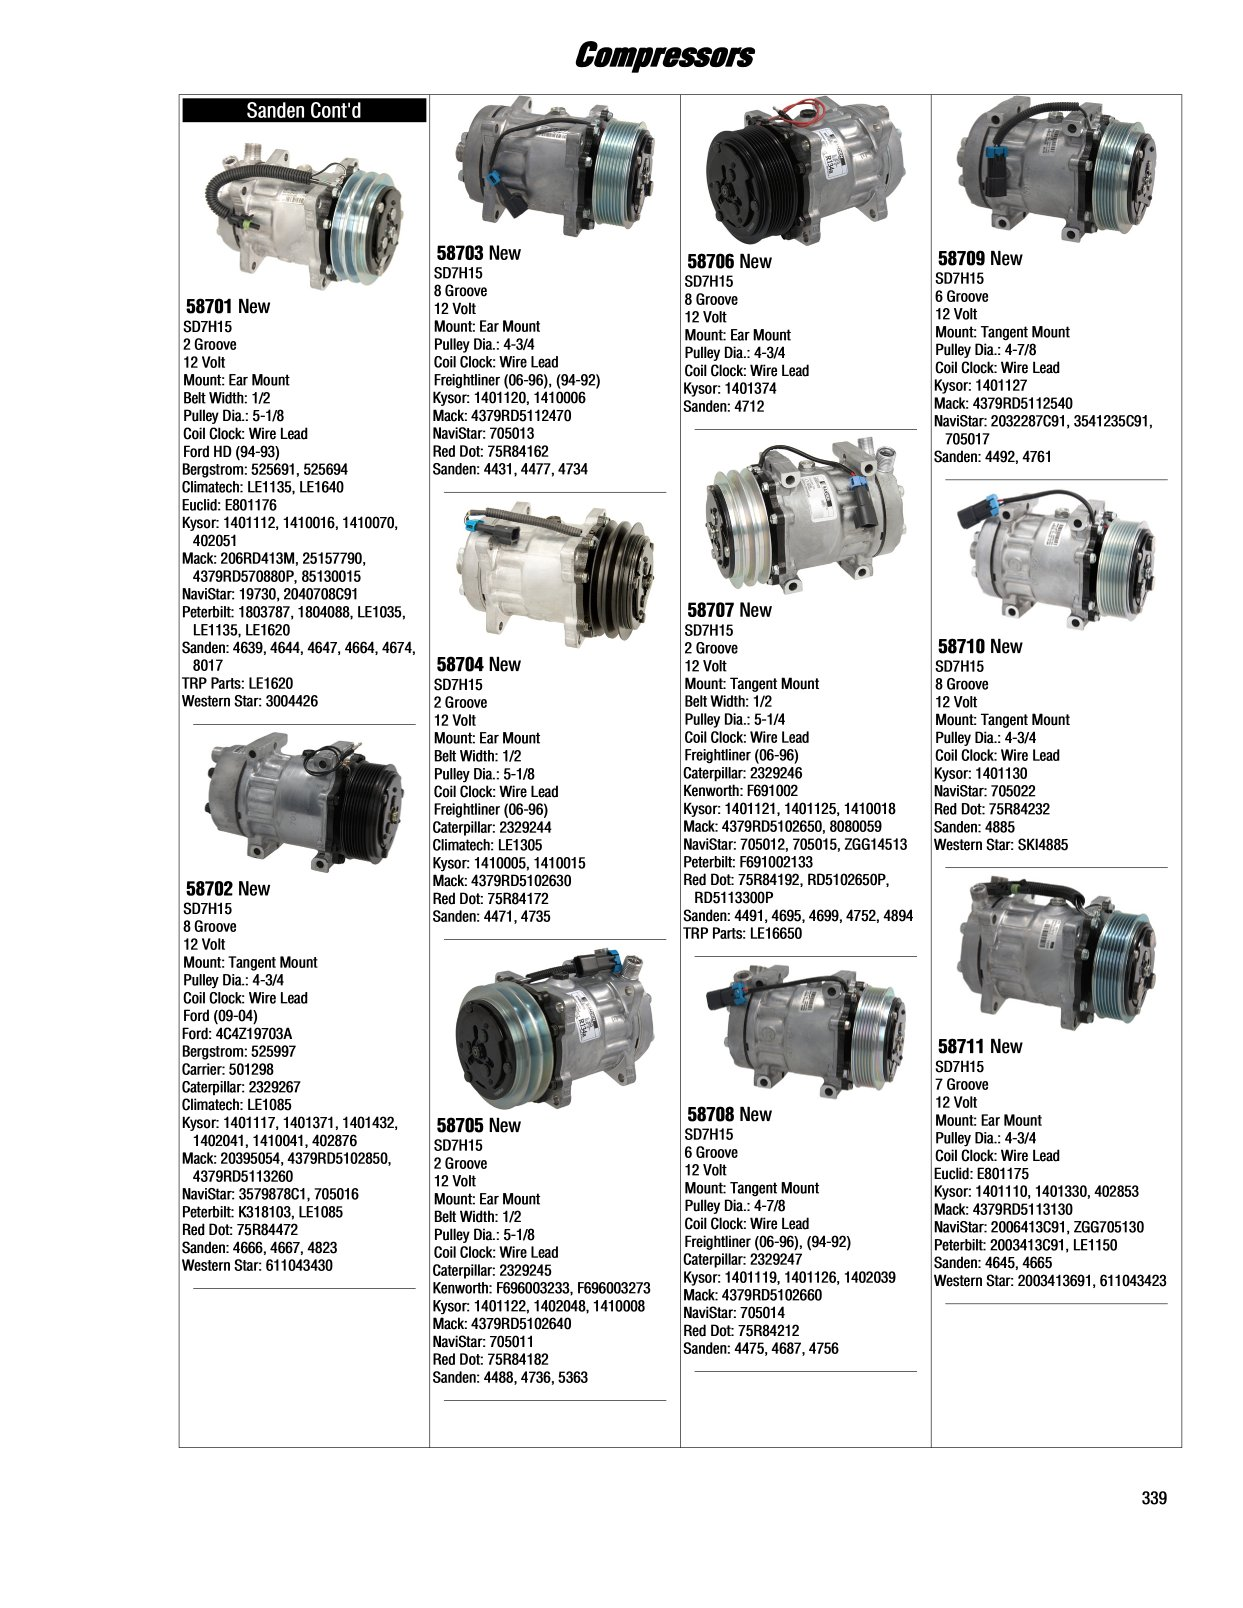 Kysor Cadillac Wiring Diagram 339 Page 2 And Schematics